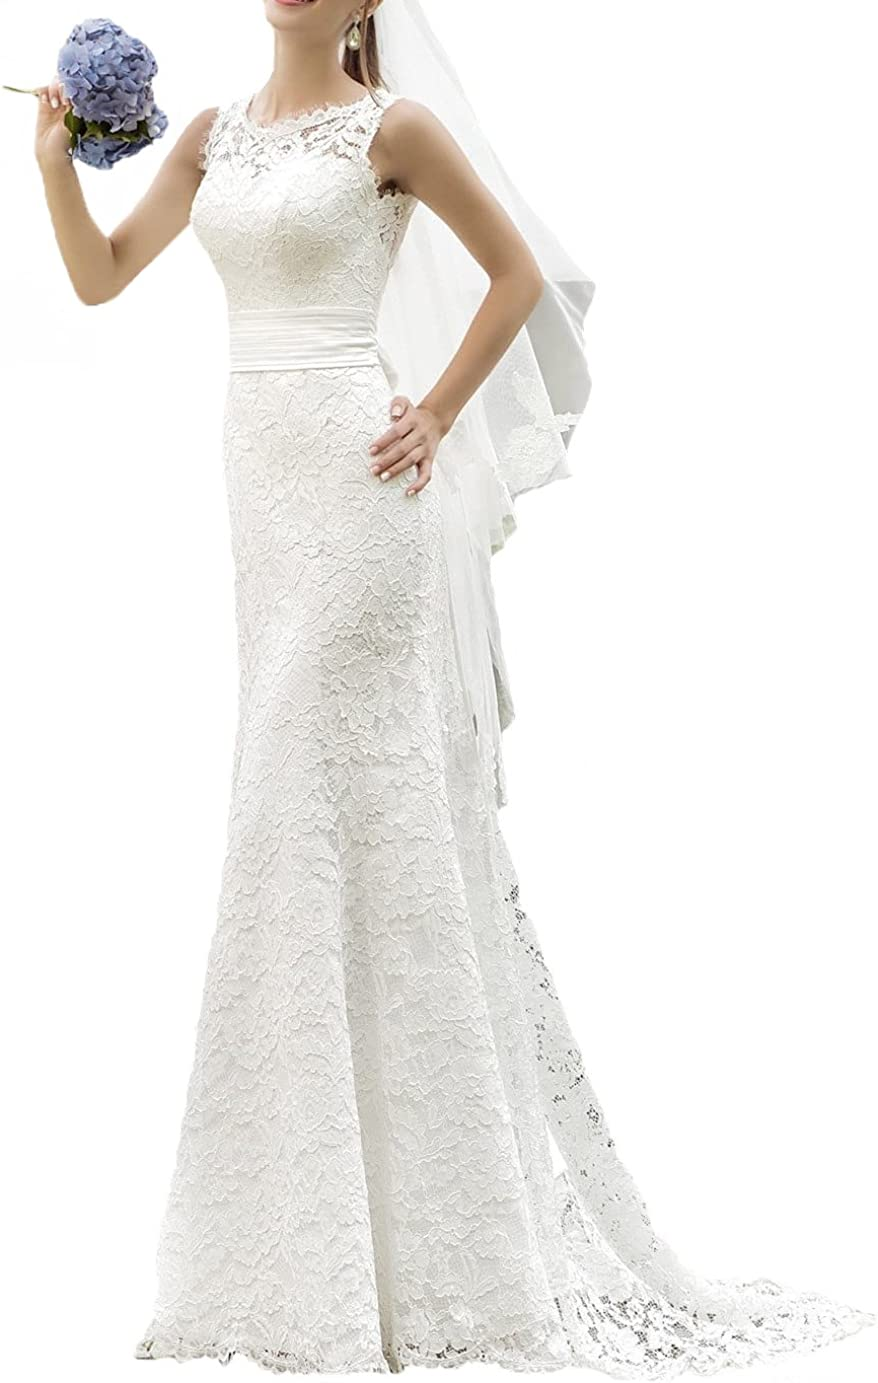 Miao Duo Full Lace Wedding Dresses Bride Elegant Summer Beach Bridal Gowns